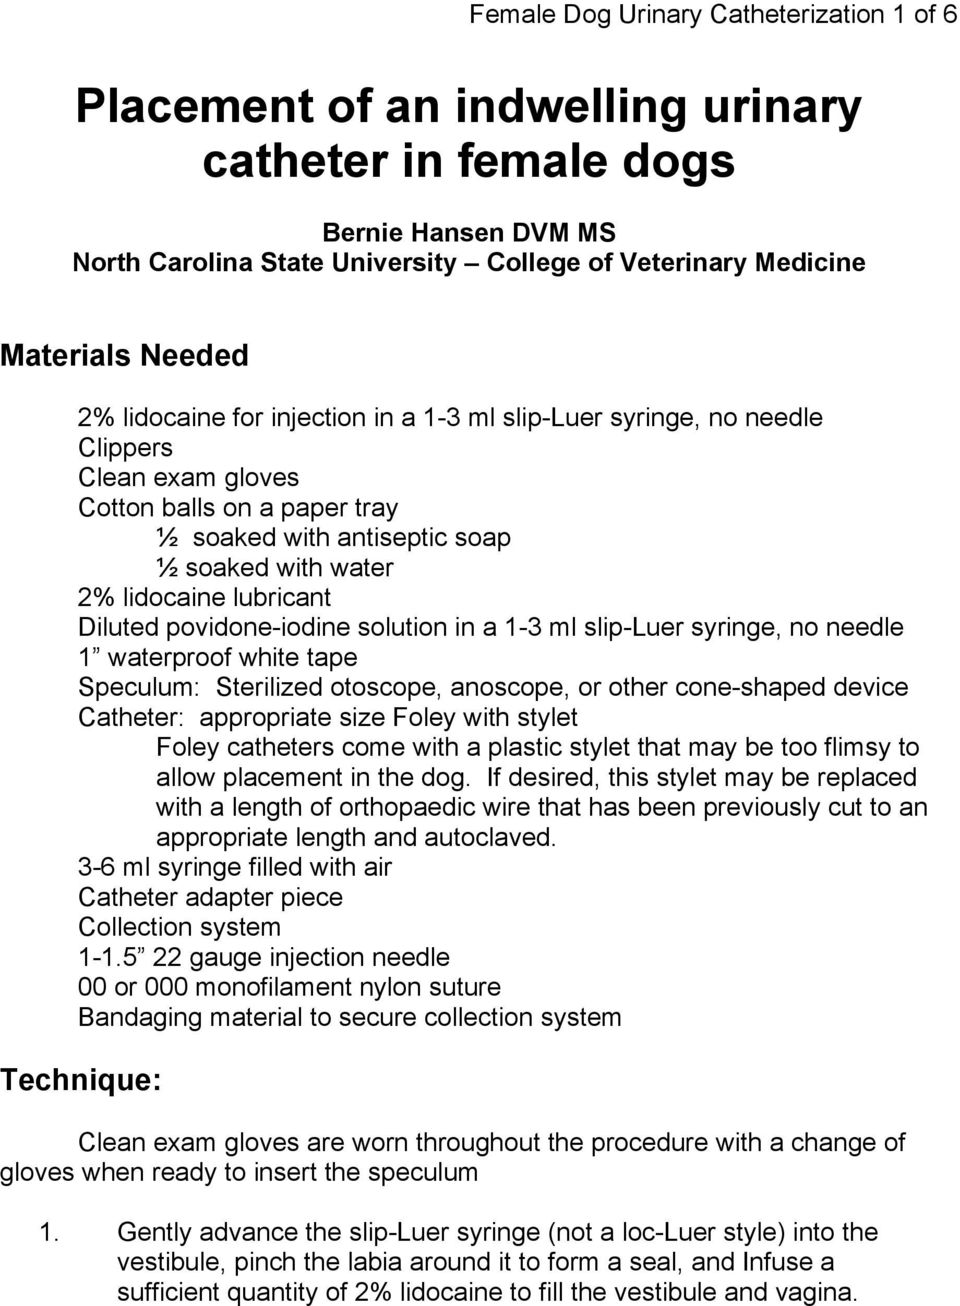 lubricant Diluted povidone-iodine solution in a 1-3 ml slip-luer syringe, no needle 1 waterproof white tape Speculum: Sterilized otoscope, anoscope, or other cone-shaped device Catheter: appropriate